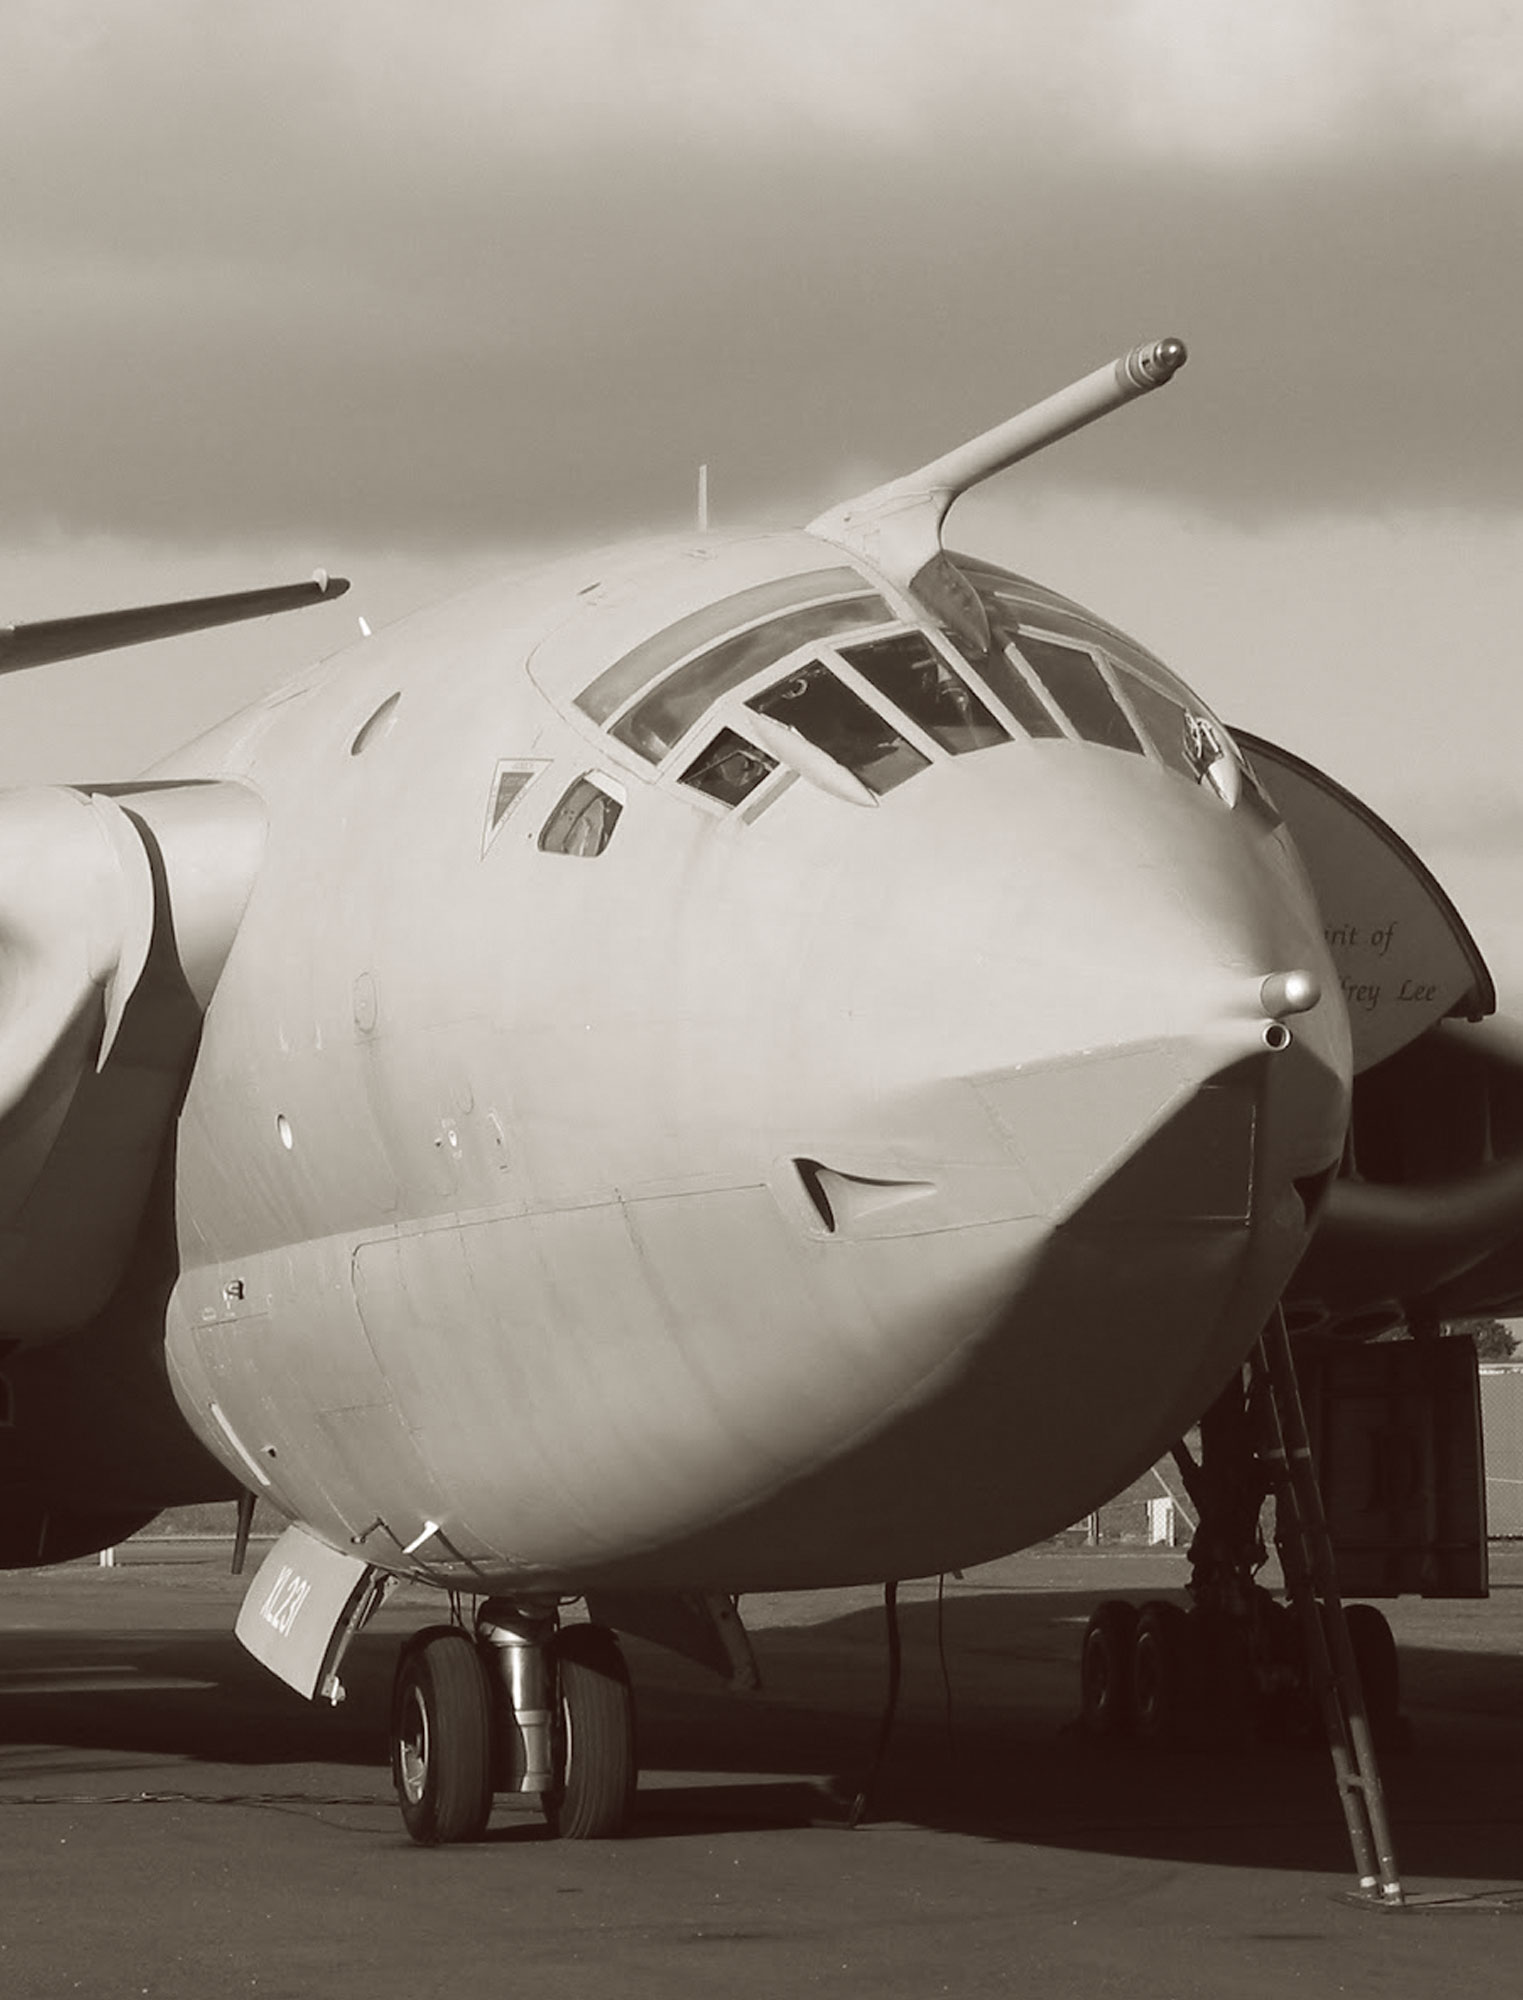 COLD WAR ERA, HANDLEY PAGE VICTOR BOMBER, SMITHS KRA 2020k RATE OF CLIMB INDICATOR